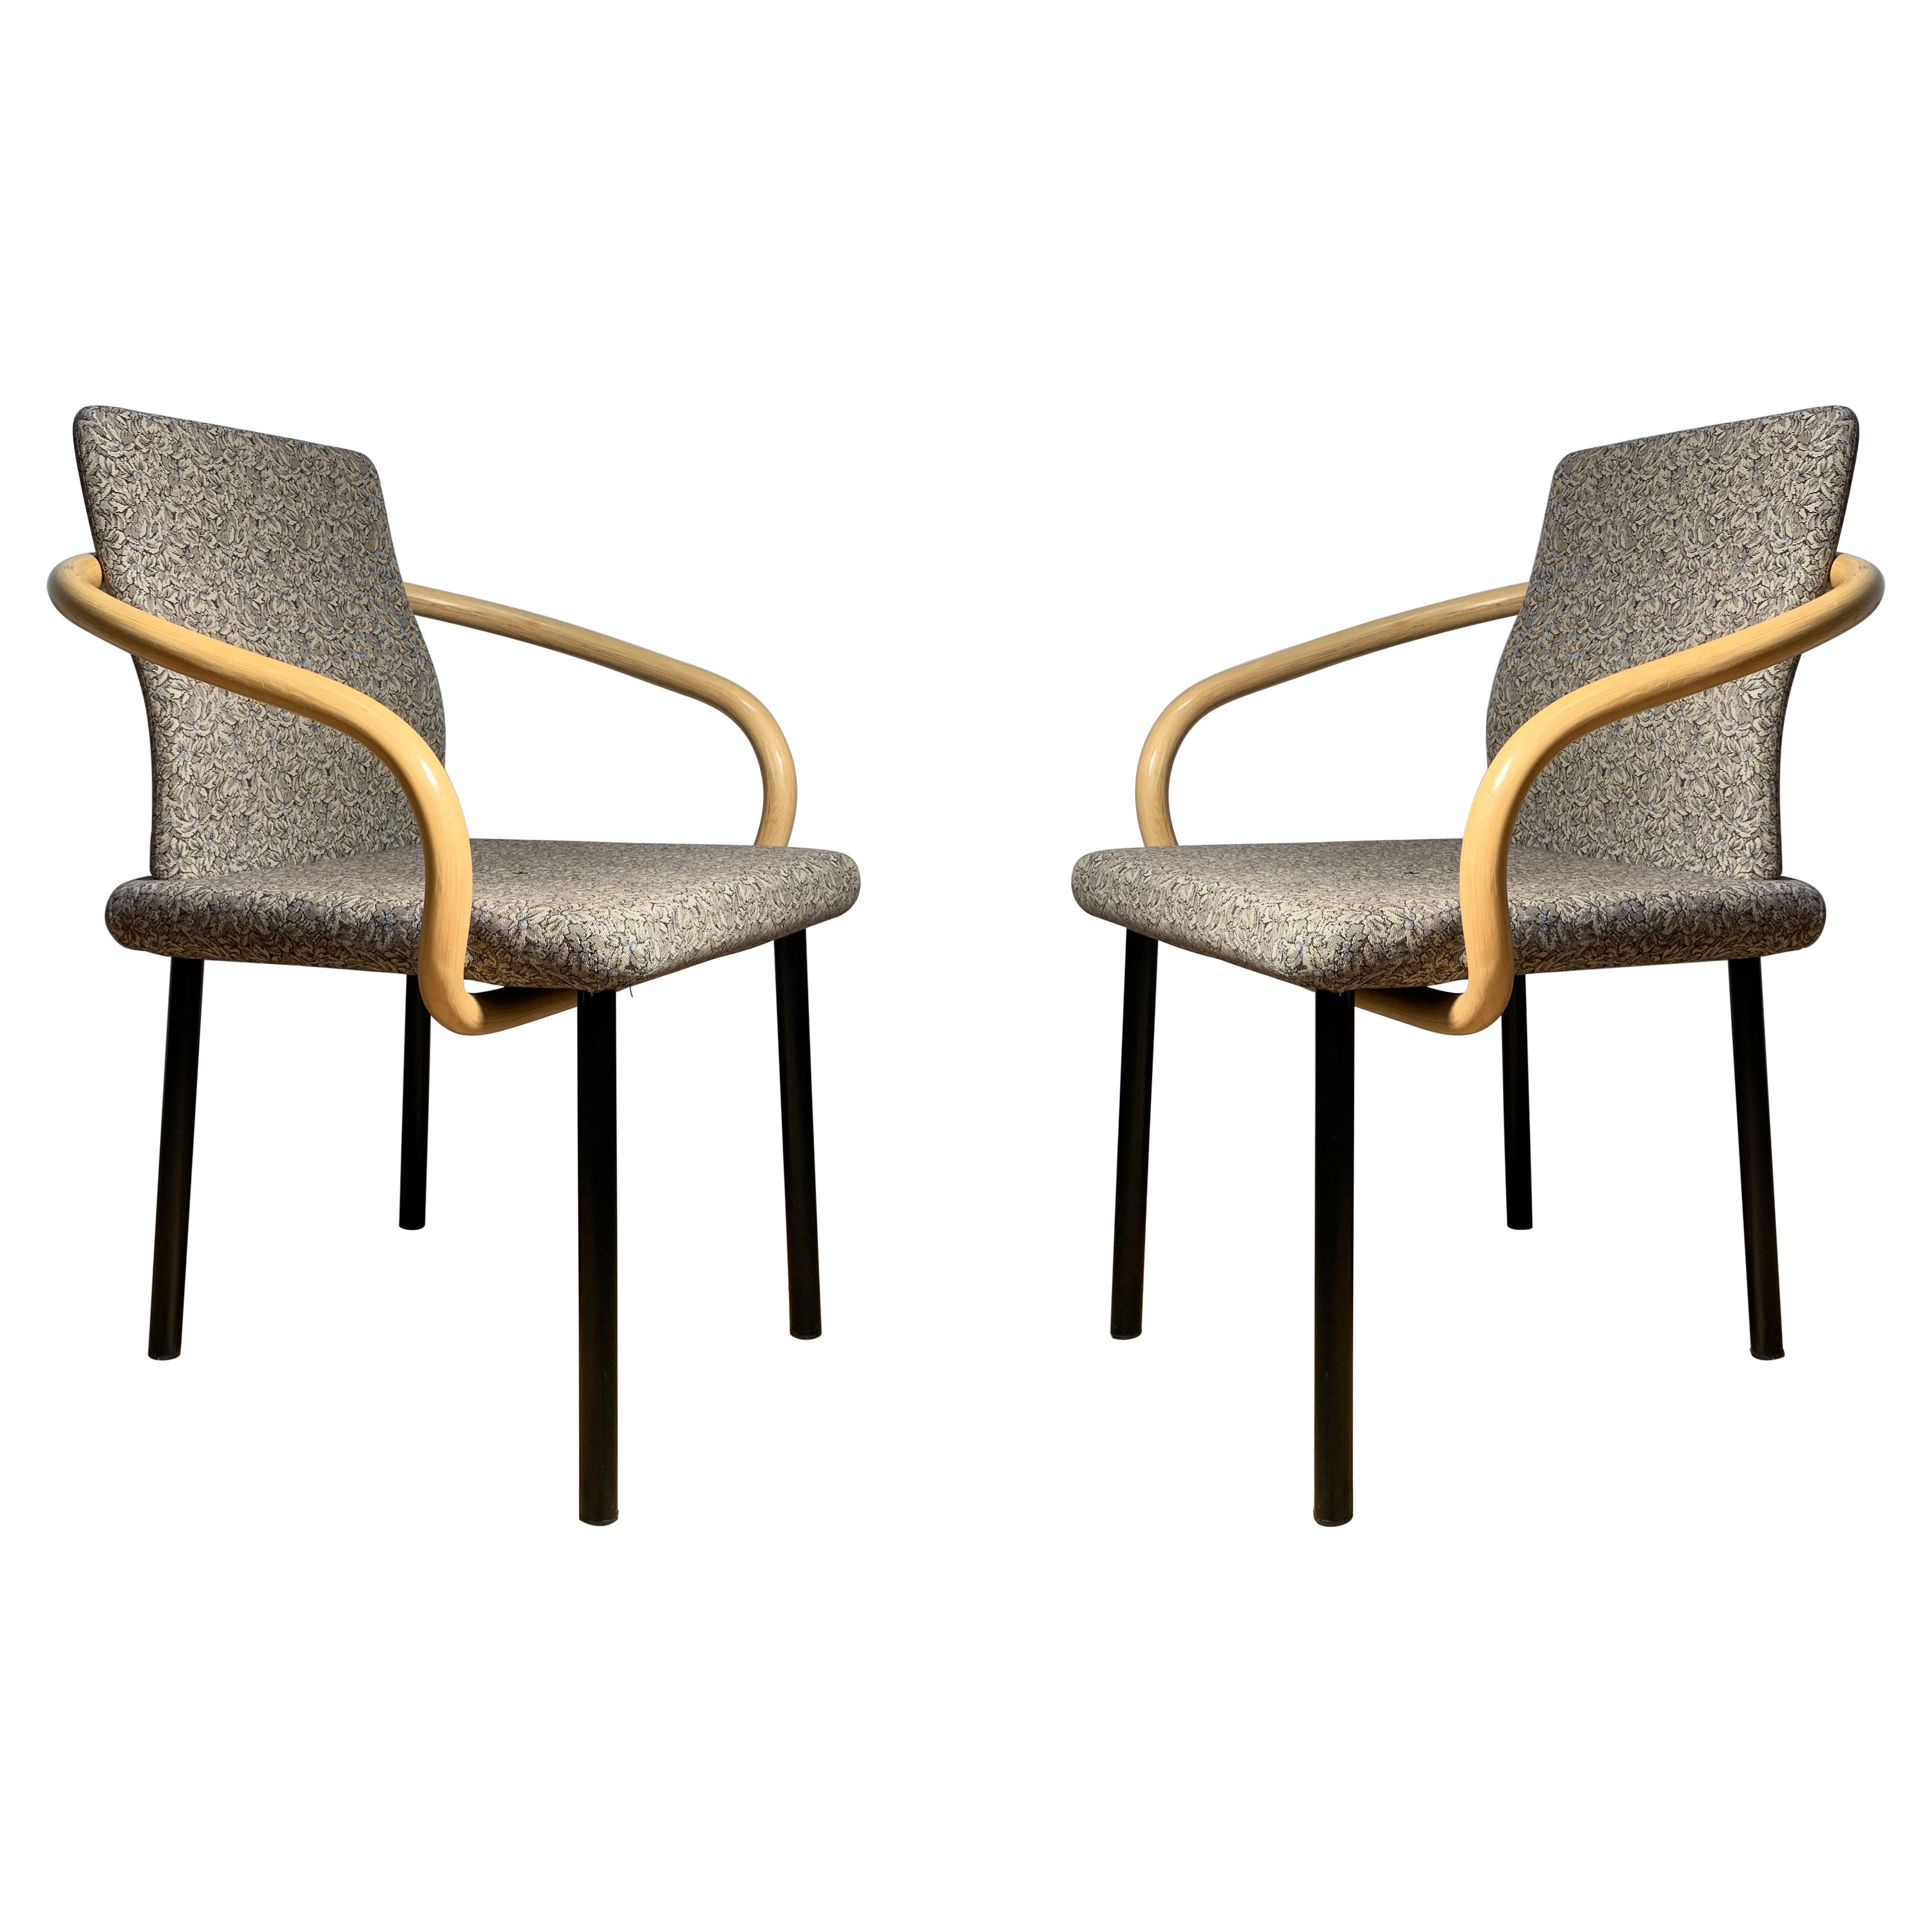 Pair of Ettore Sottsass for Knoll Mandarin Chairs Bamboo Arms